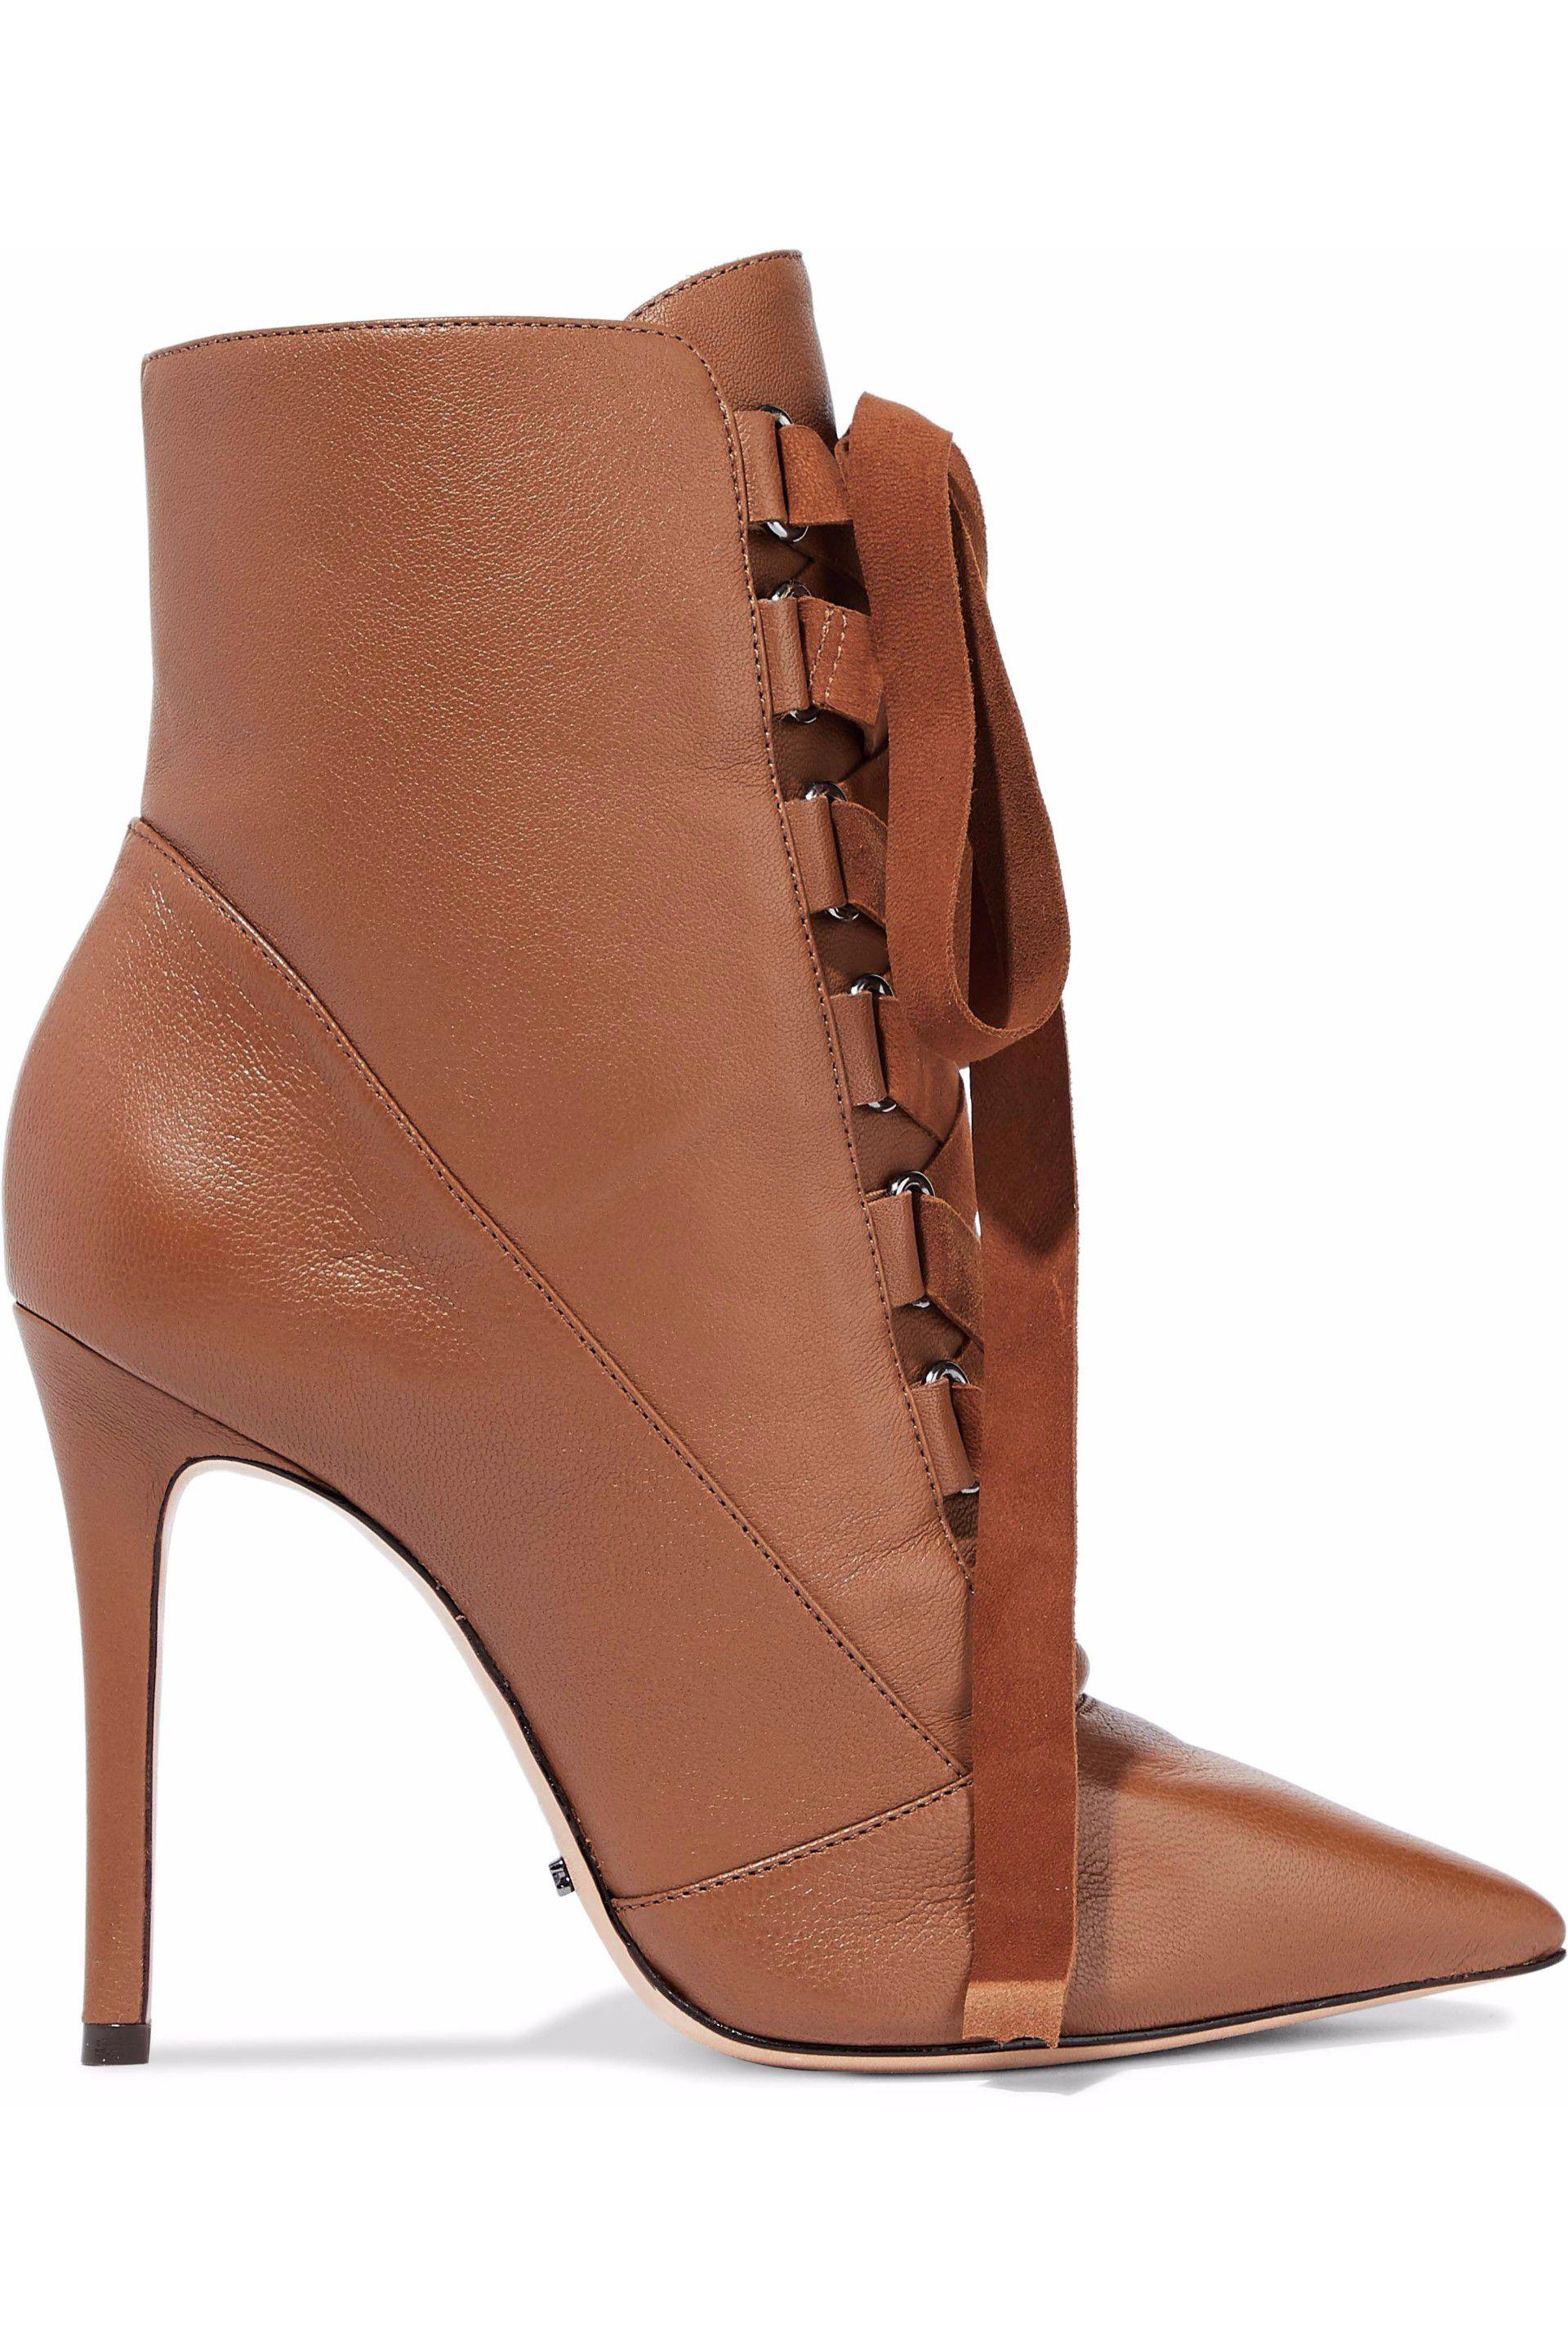 Schutz Fur-Trimme Ankle Boots discount clearance store outlet hot sale best place for sale supply sale online FHbyESnFj7